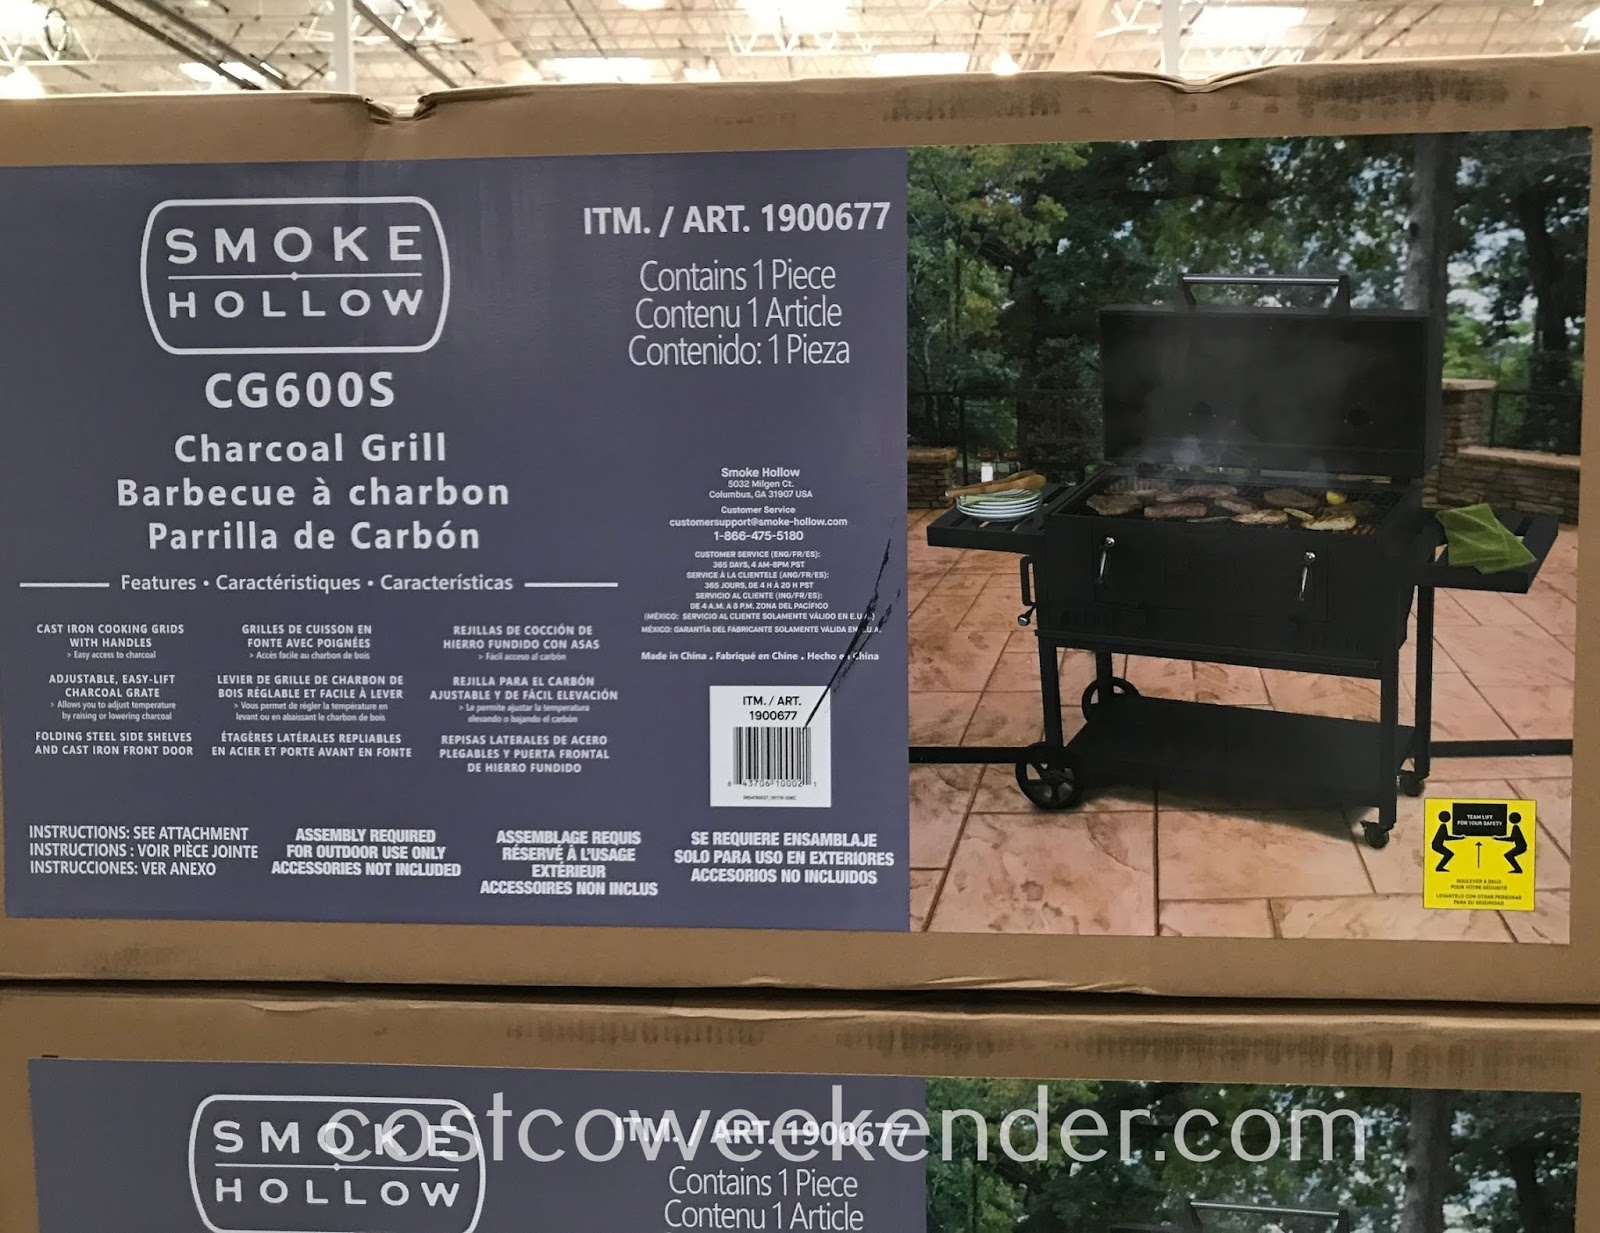 Costco 1900677 - Smoke Hollow CG600S Charcoal Grill: great for summer barbecues